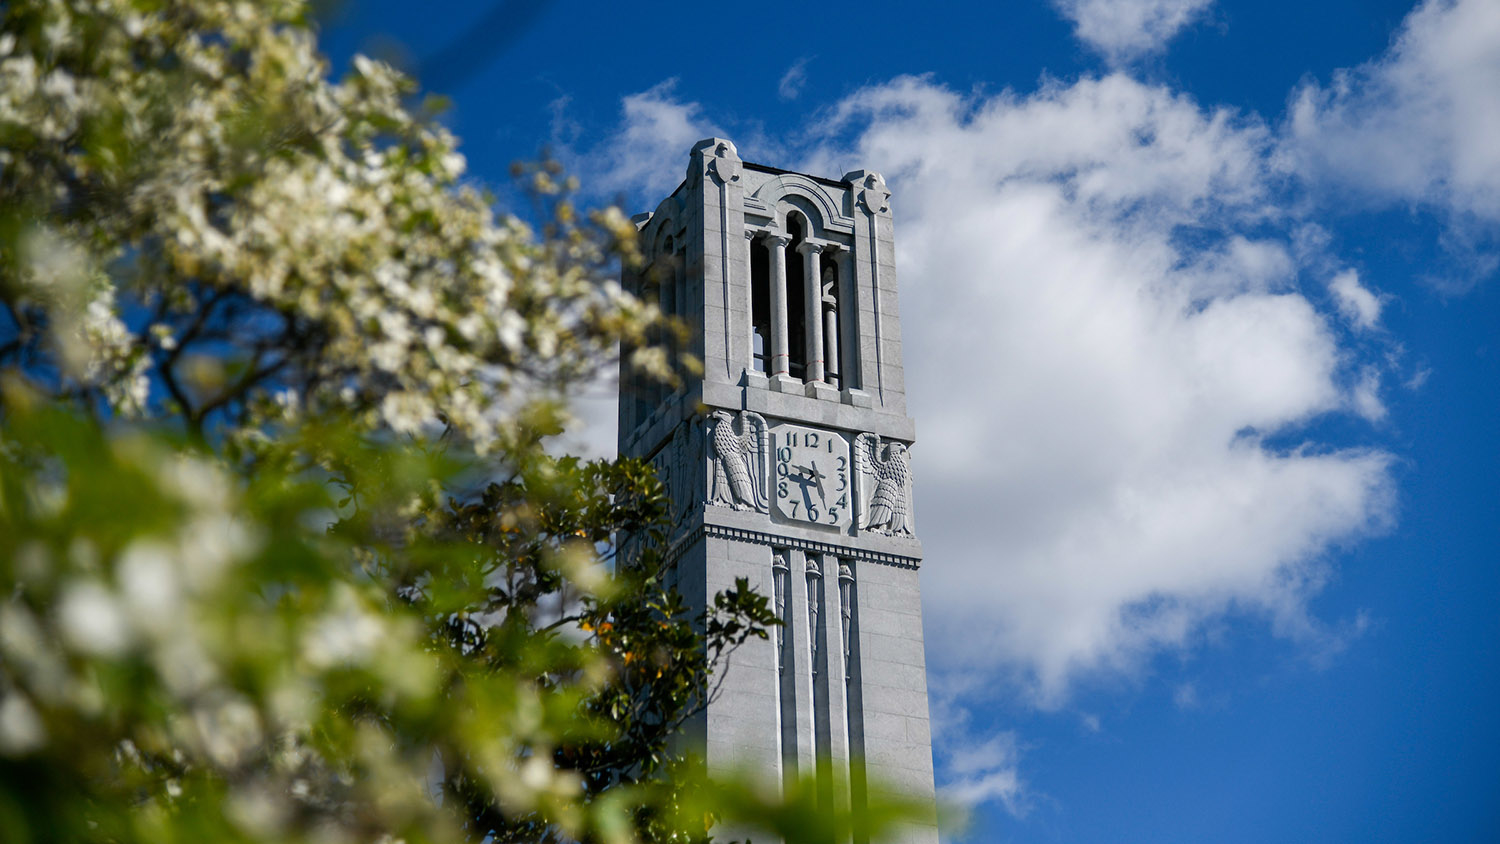 The NCState Belltower against a blue sky, with flowering trees in the foreground